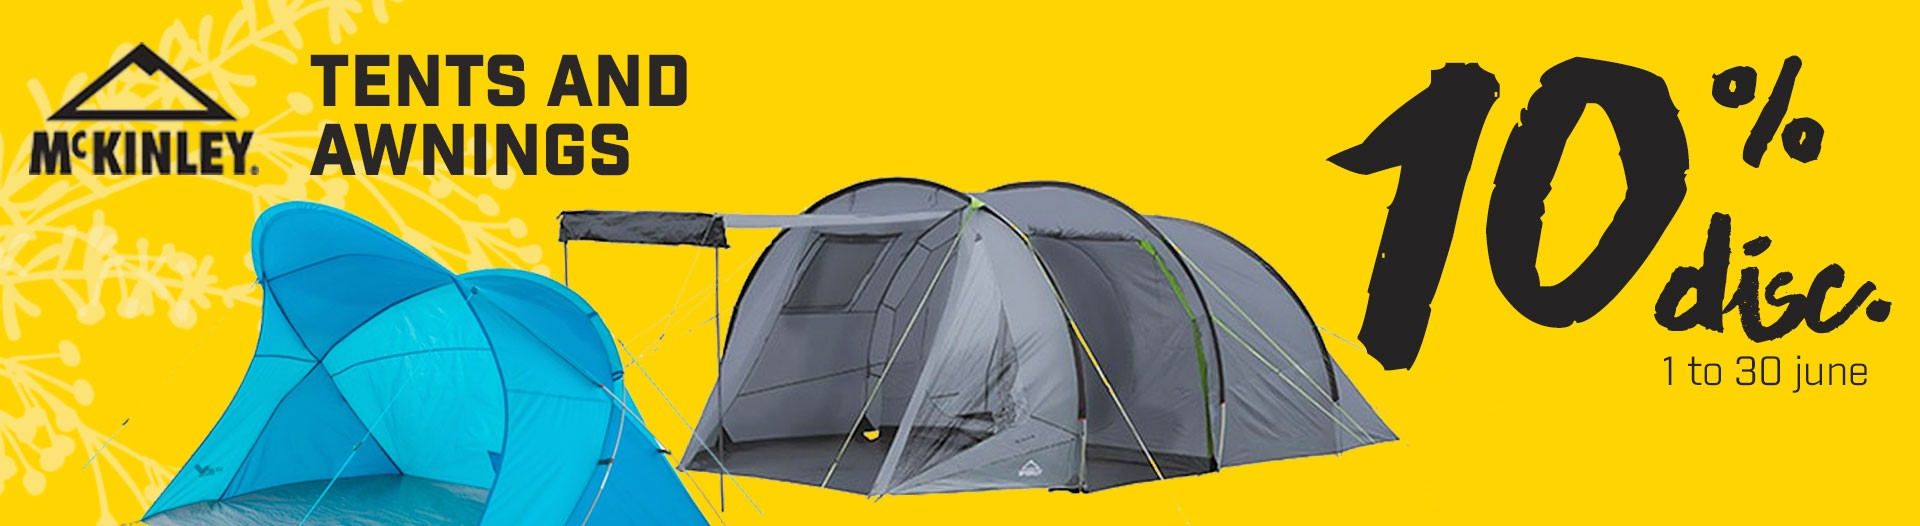 Shelter tents sales 10%